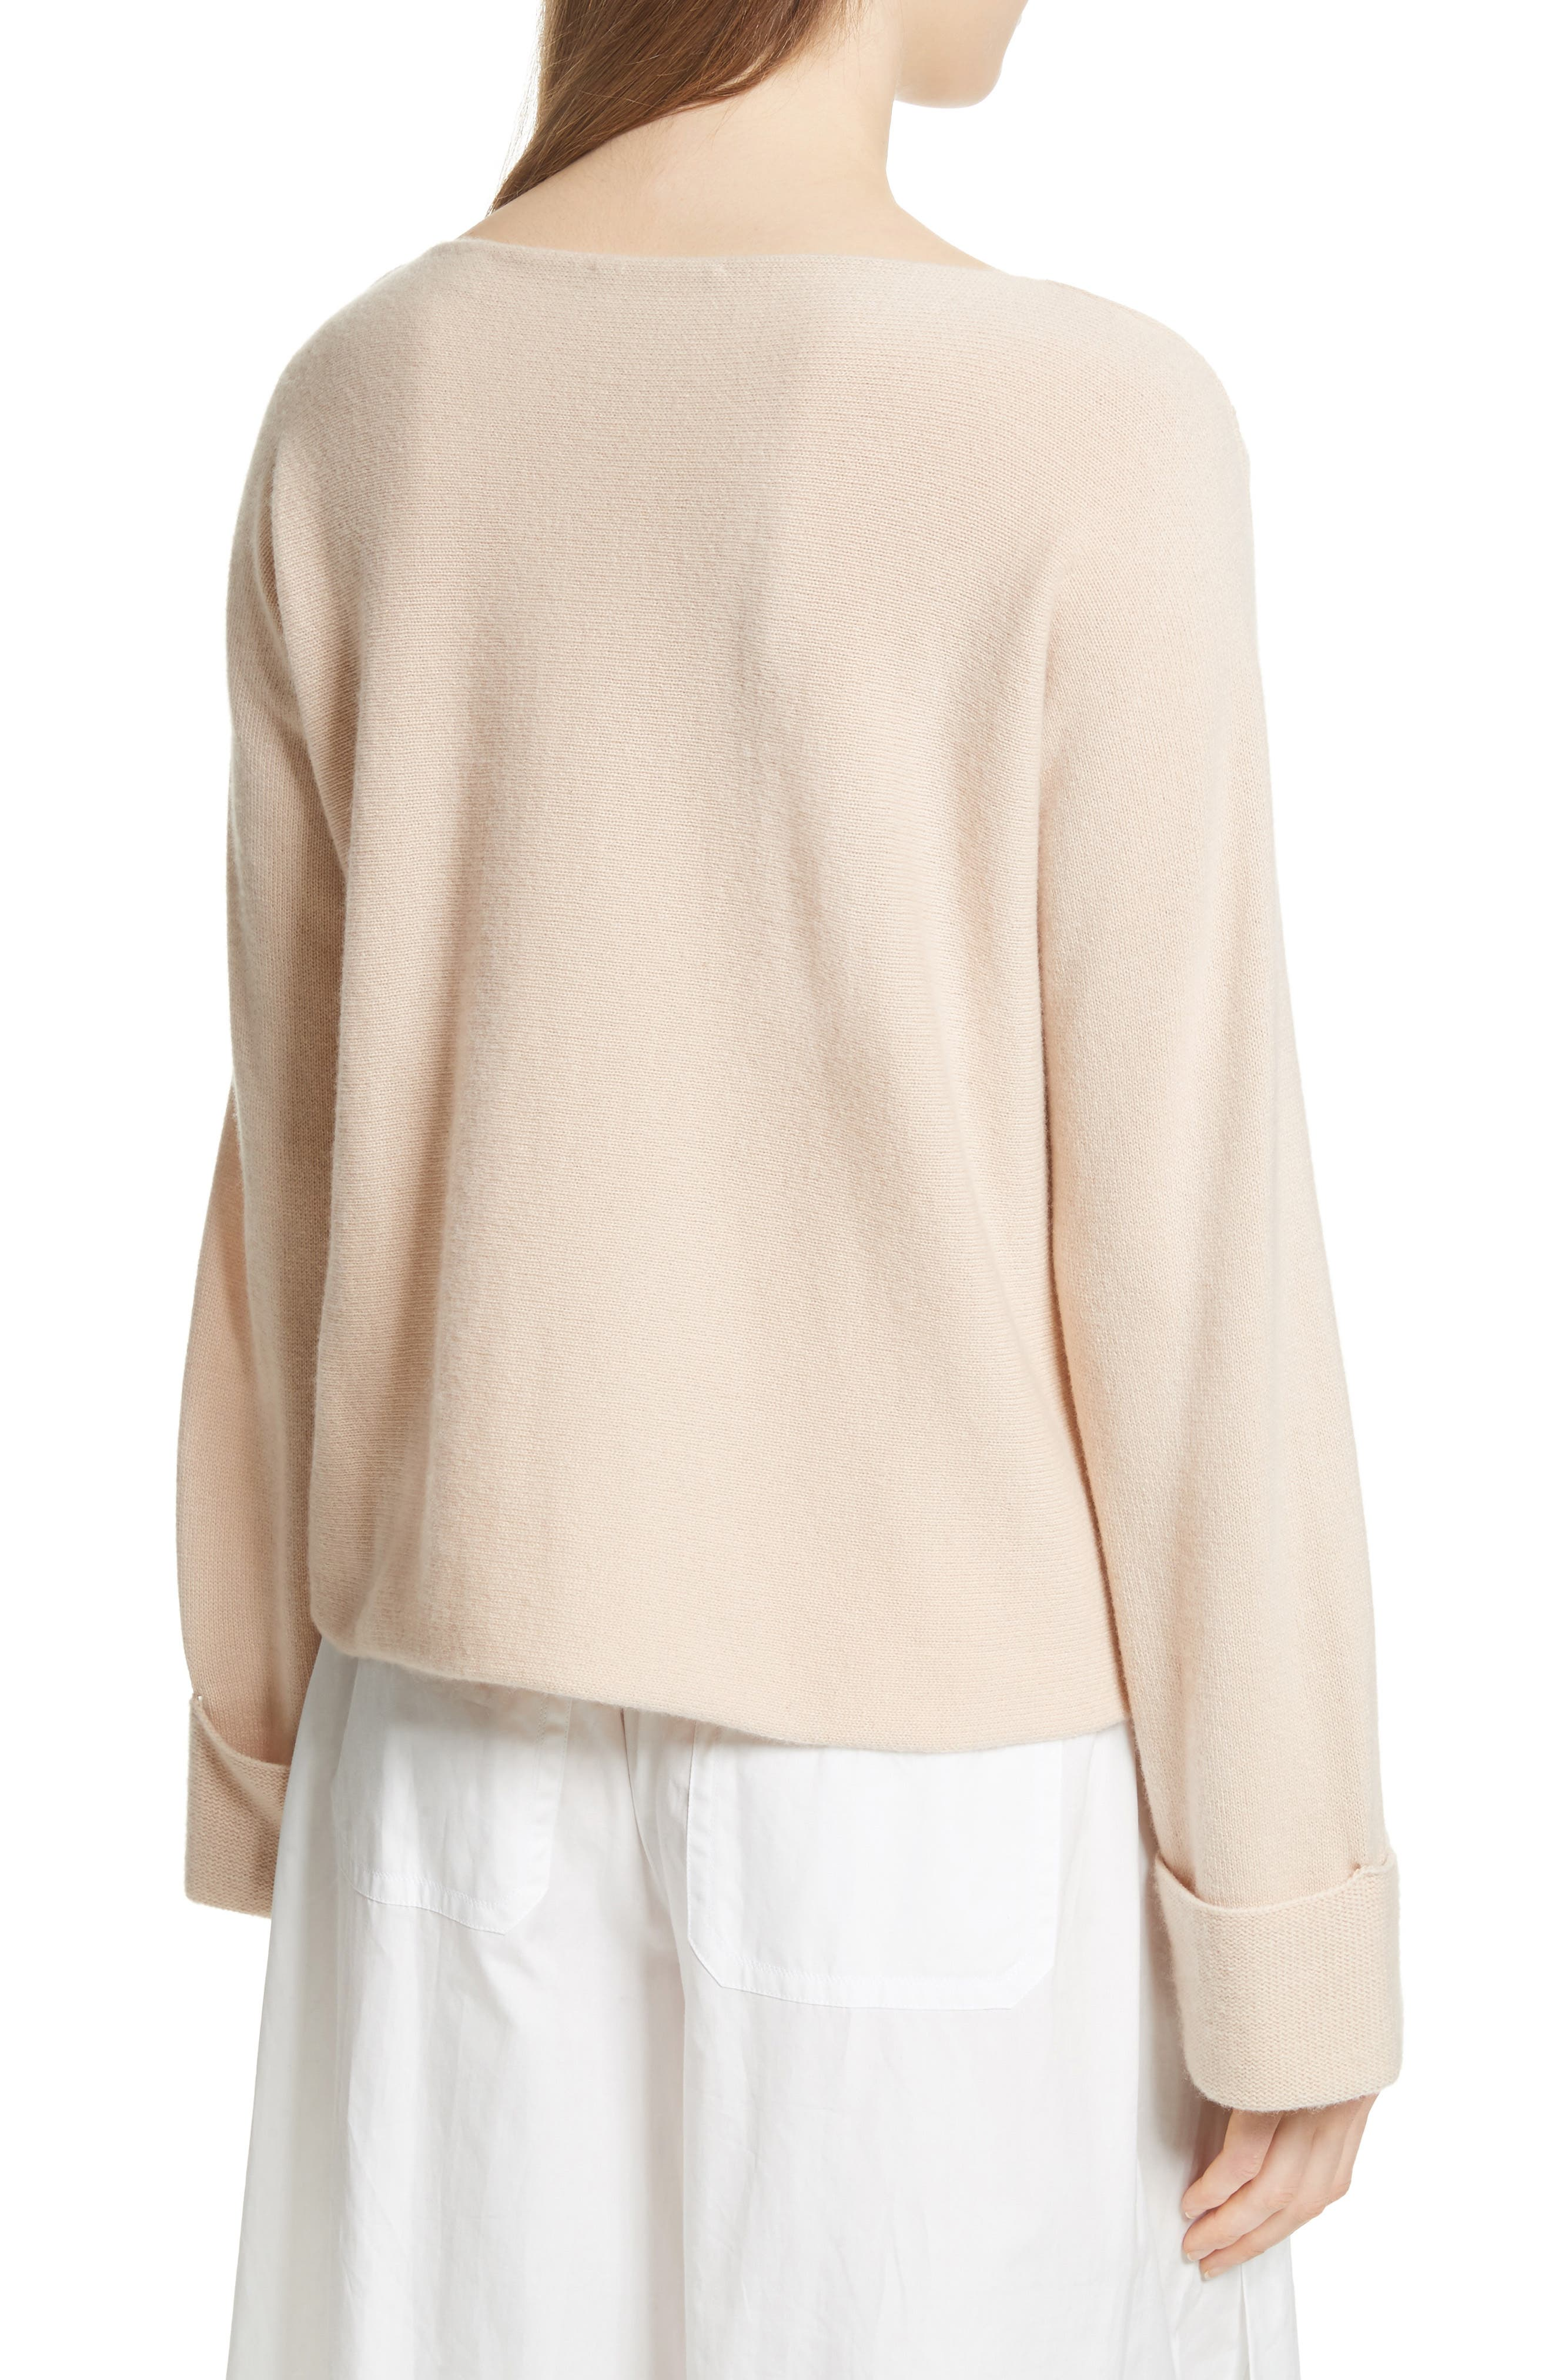 VINCE,                             Cuffed Sleeve Wool & Cashmere Sweater,                             Alternate thumbnail 2, color,                             298